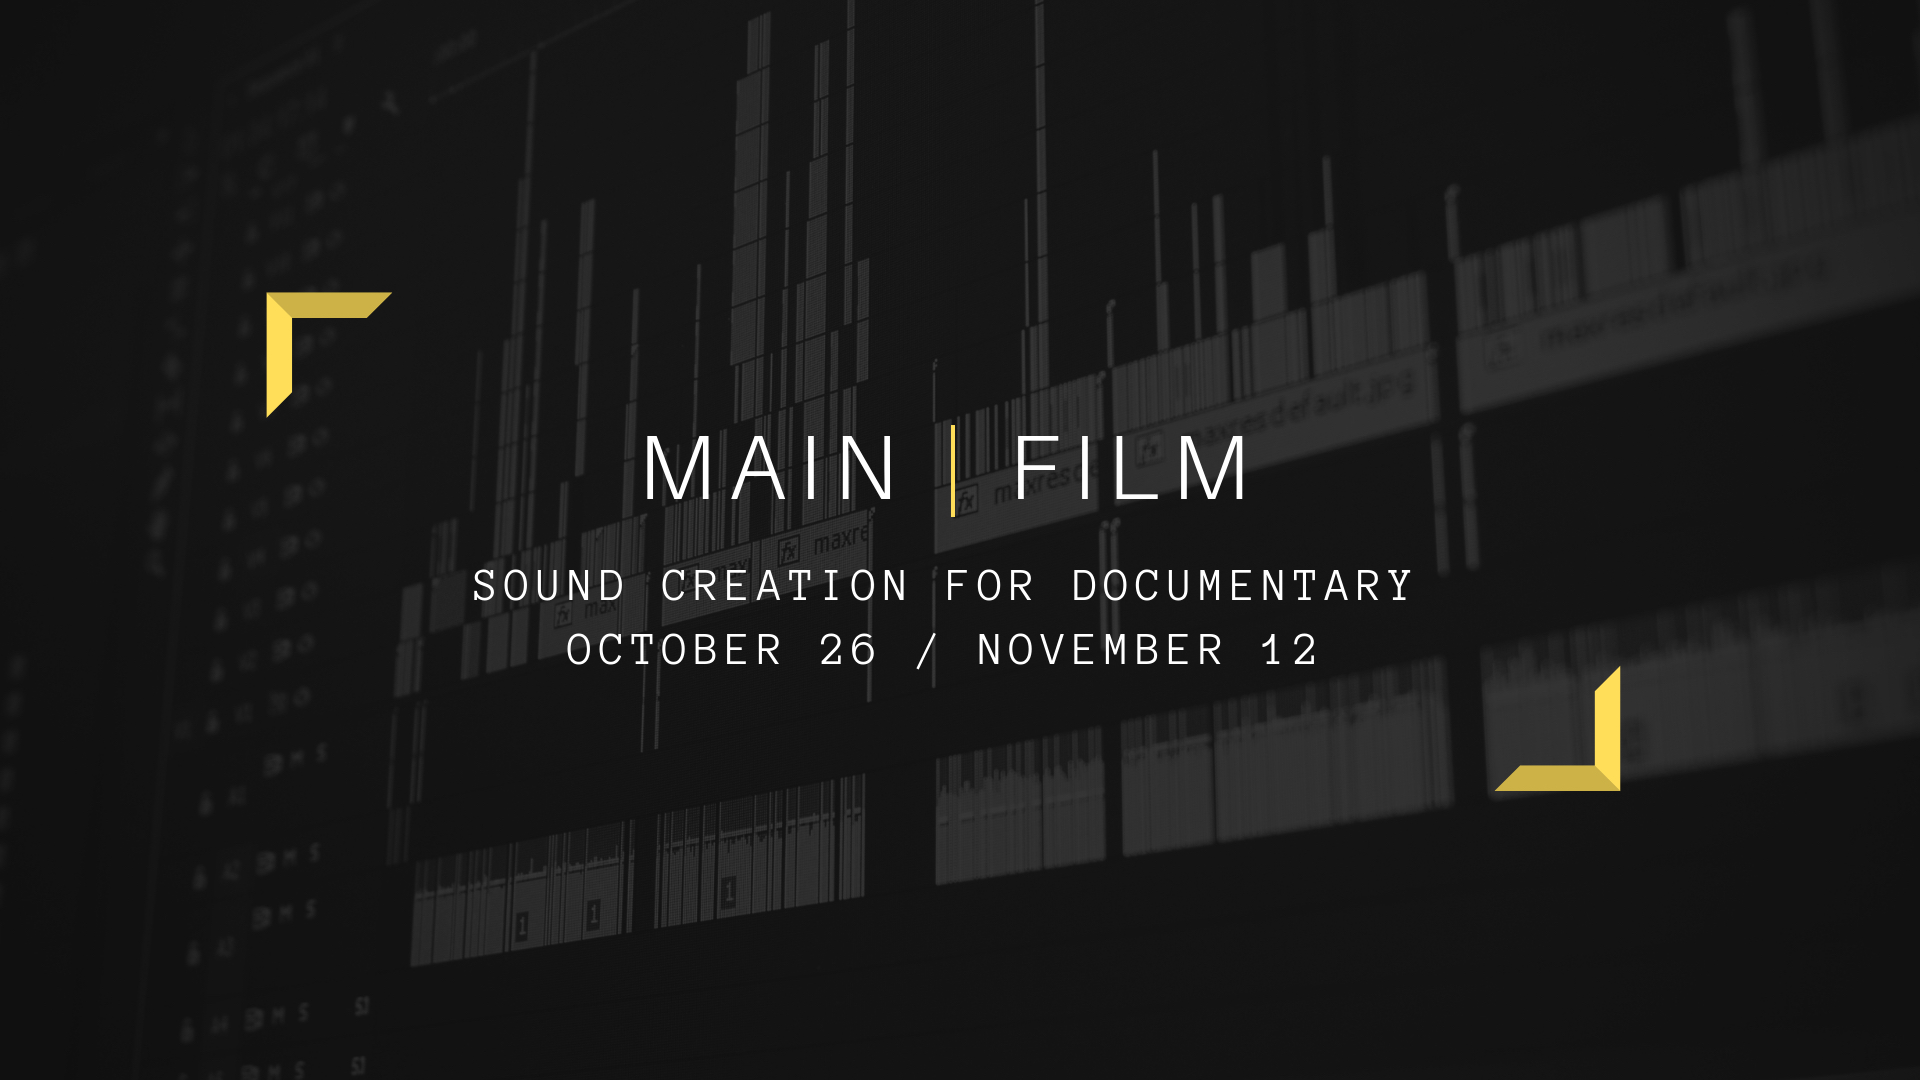 SOUND CREATION FOR DOCUMENTARY